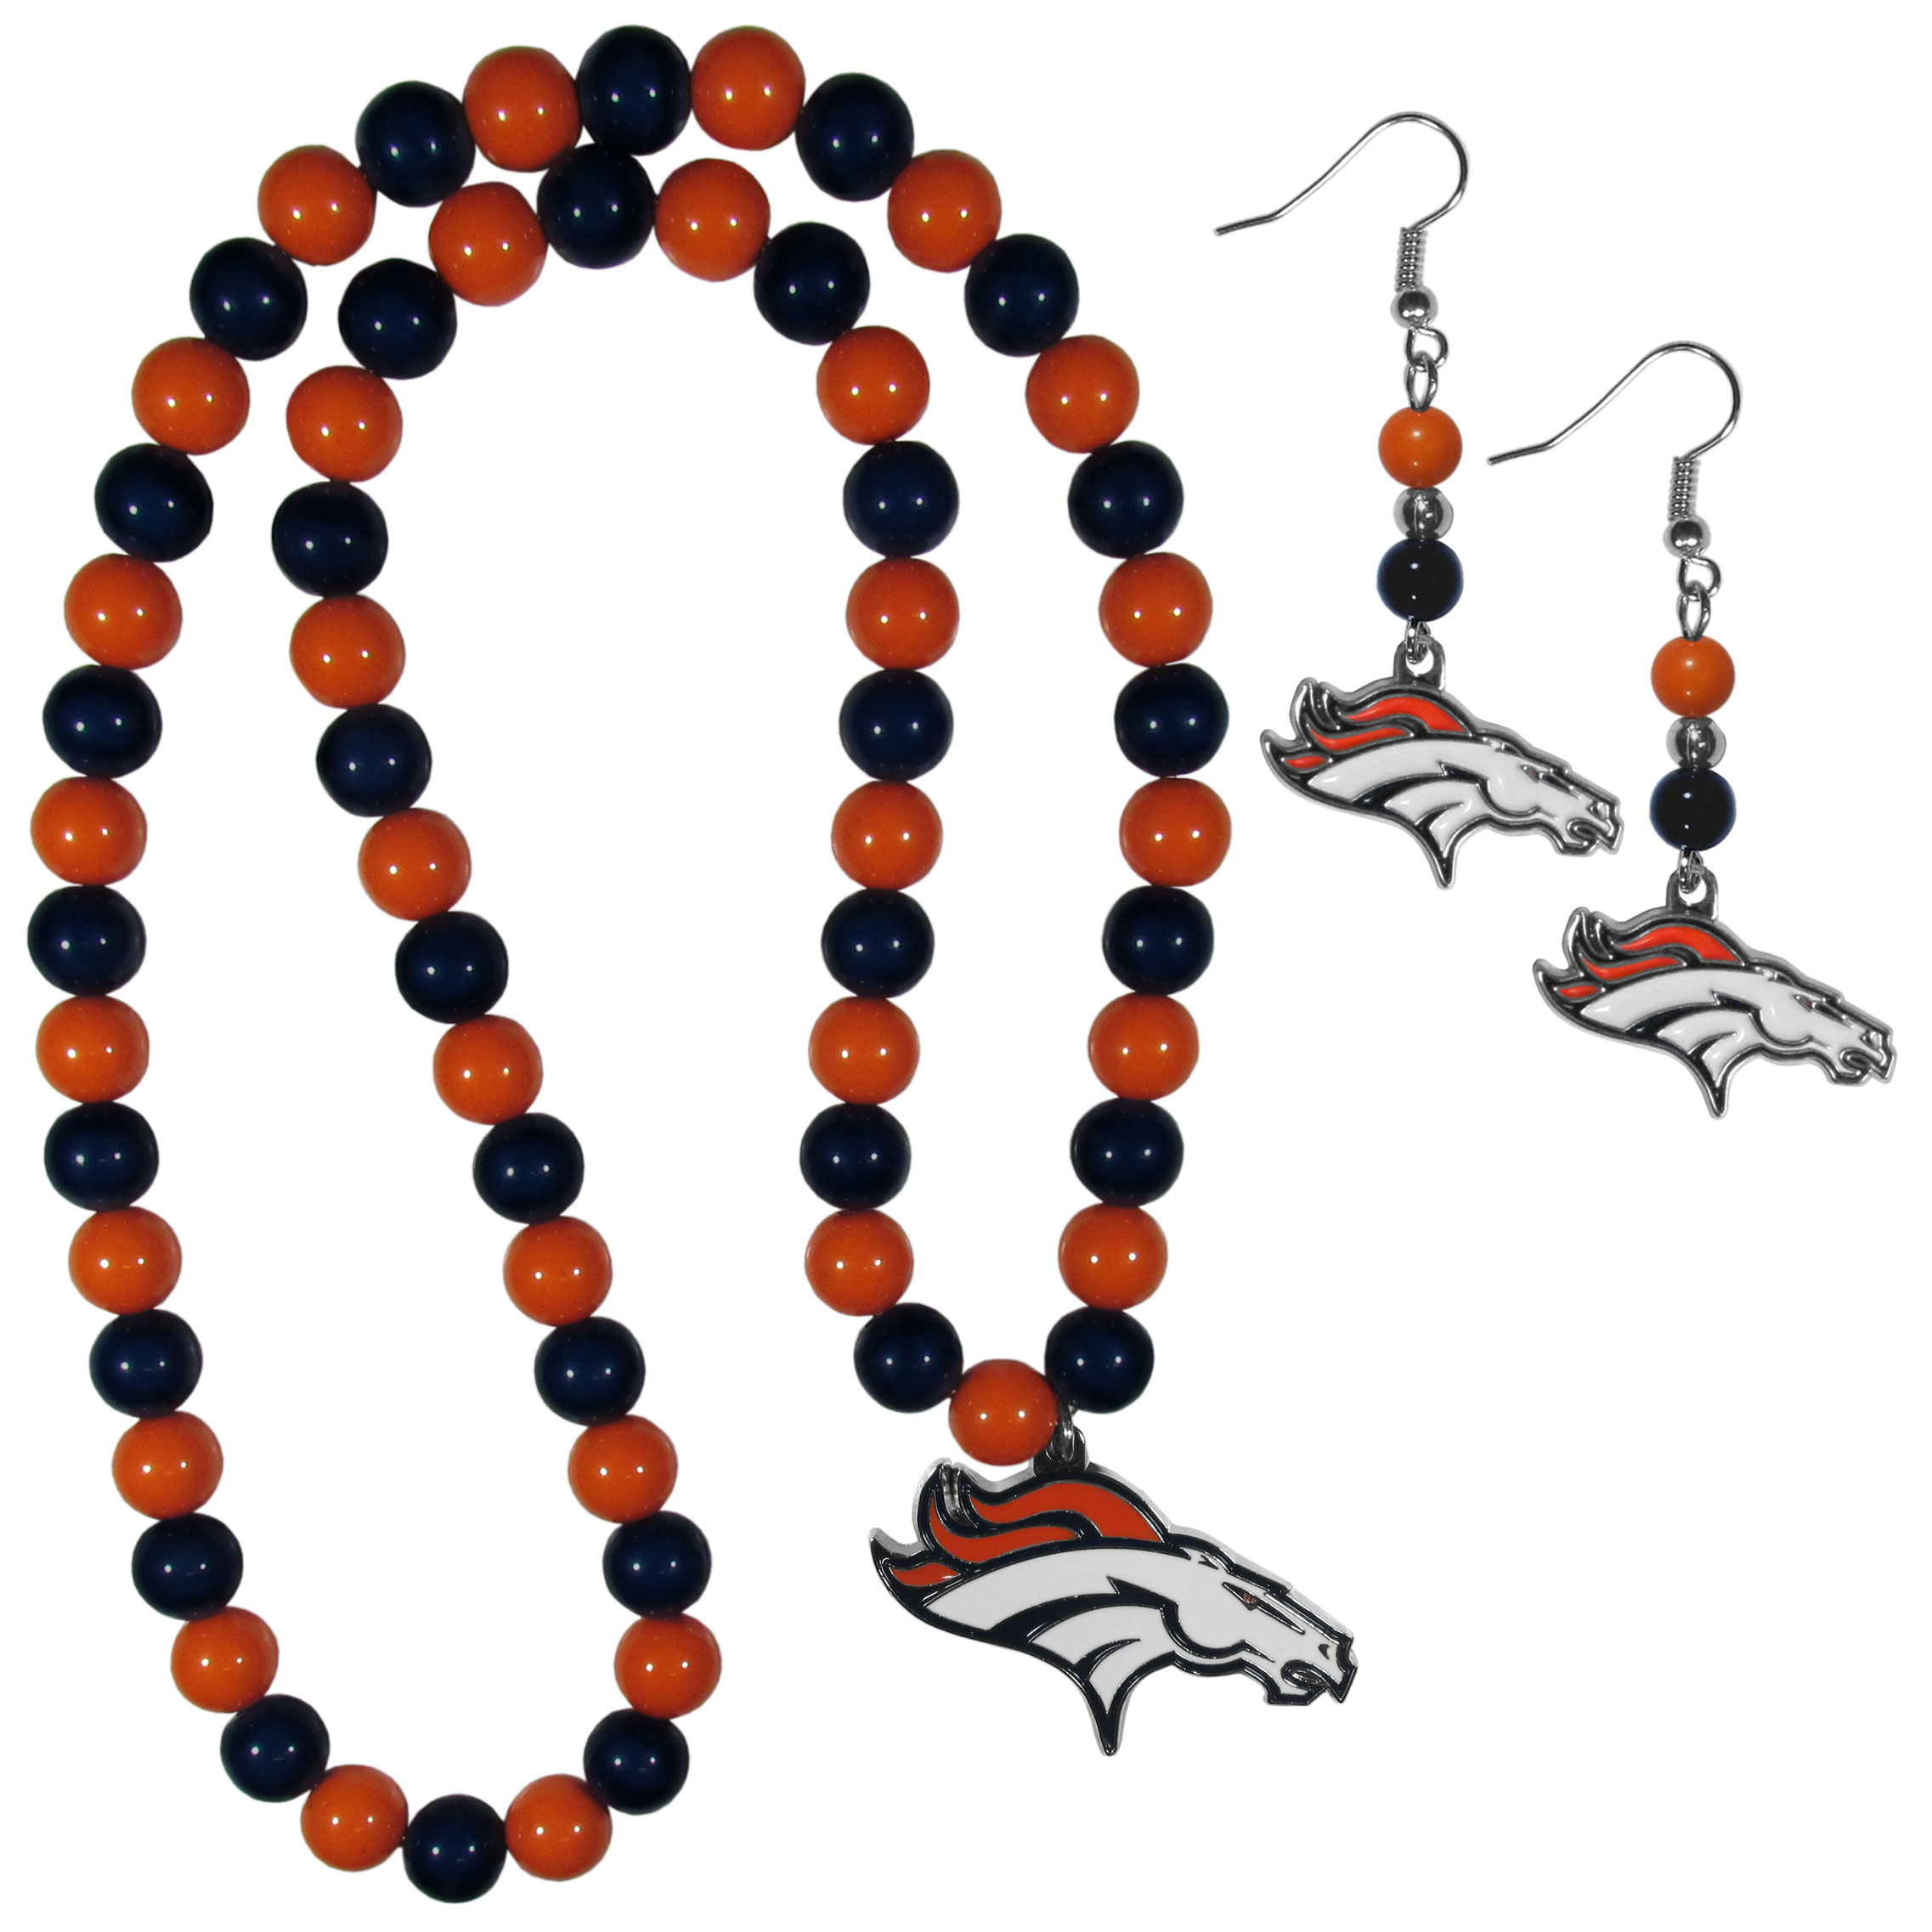 Denver Broncos Fan Bead Earrings and Necklace Set - These fun and colorful Denver Broncos fan bead jewelry pieces are an eyecatching way to show off your team spirit. The earrings feature hypoallergenic, nickel free fishhook post and 2 team colored beads with a beautifully carved team charm to finish this attractive dangle look. The mathcing bracelet has alternating team colored beads on a stretch cord and features a matching team charm.